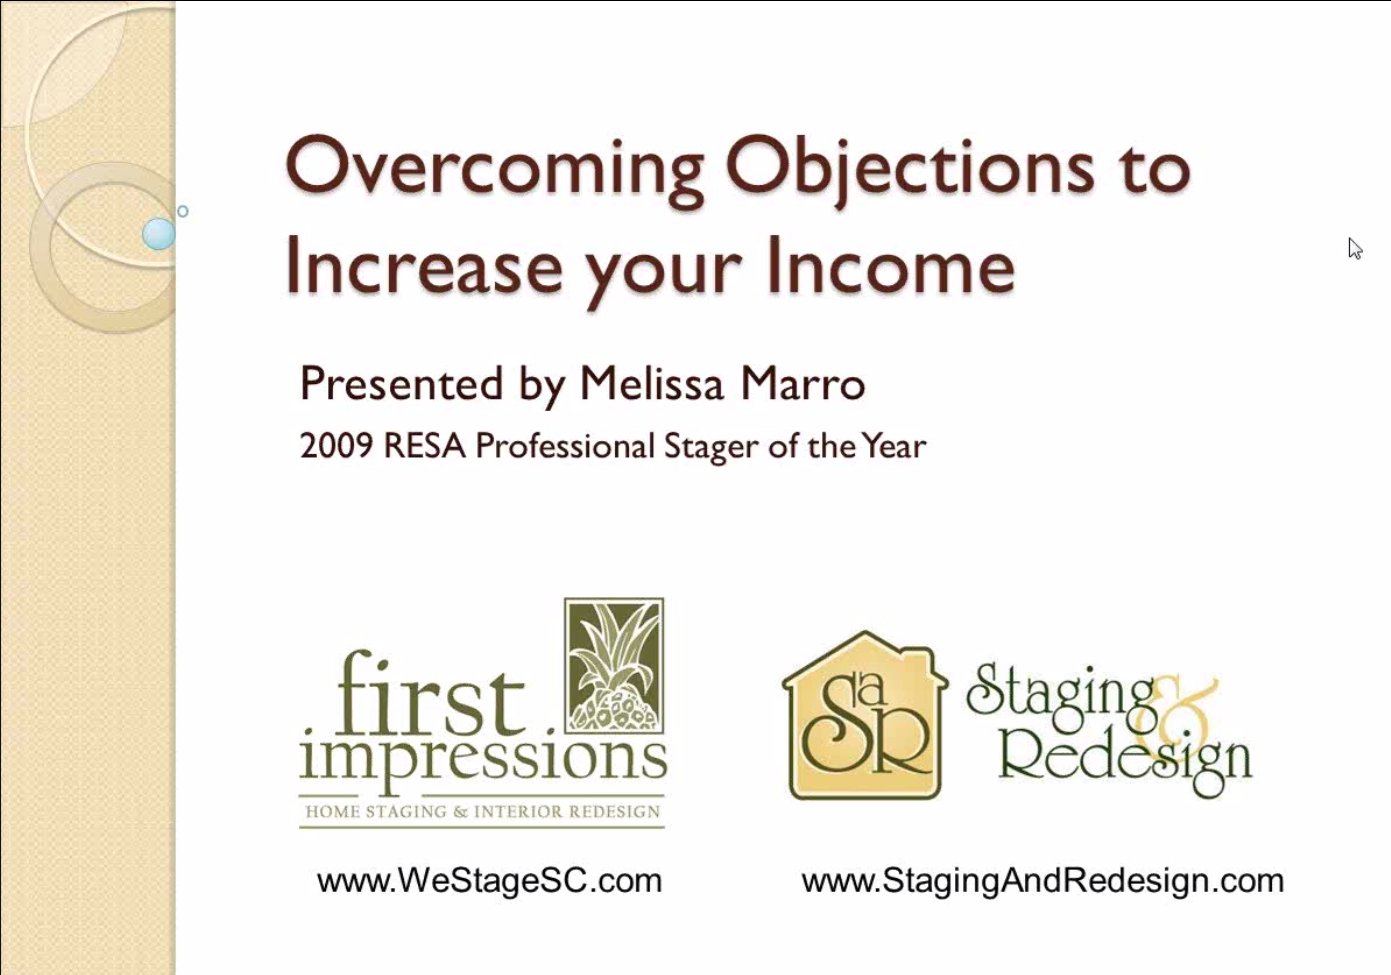 Overcoming Objections To Increase Your Income